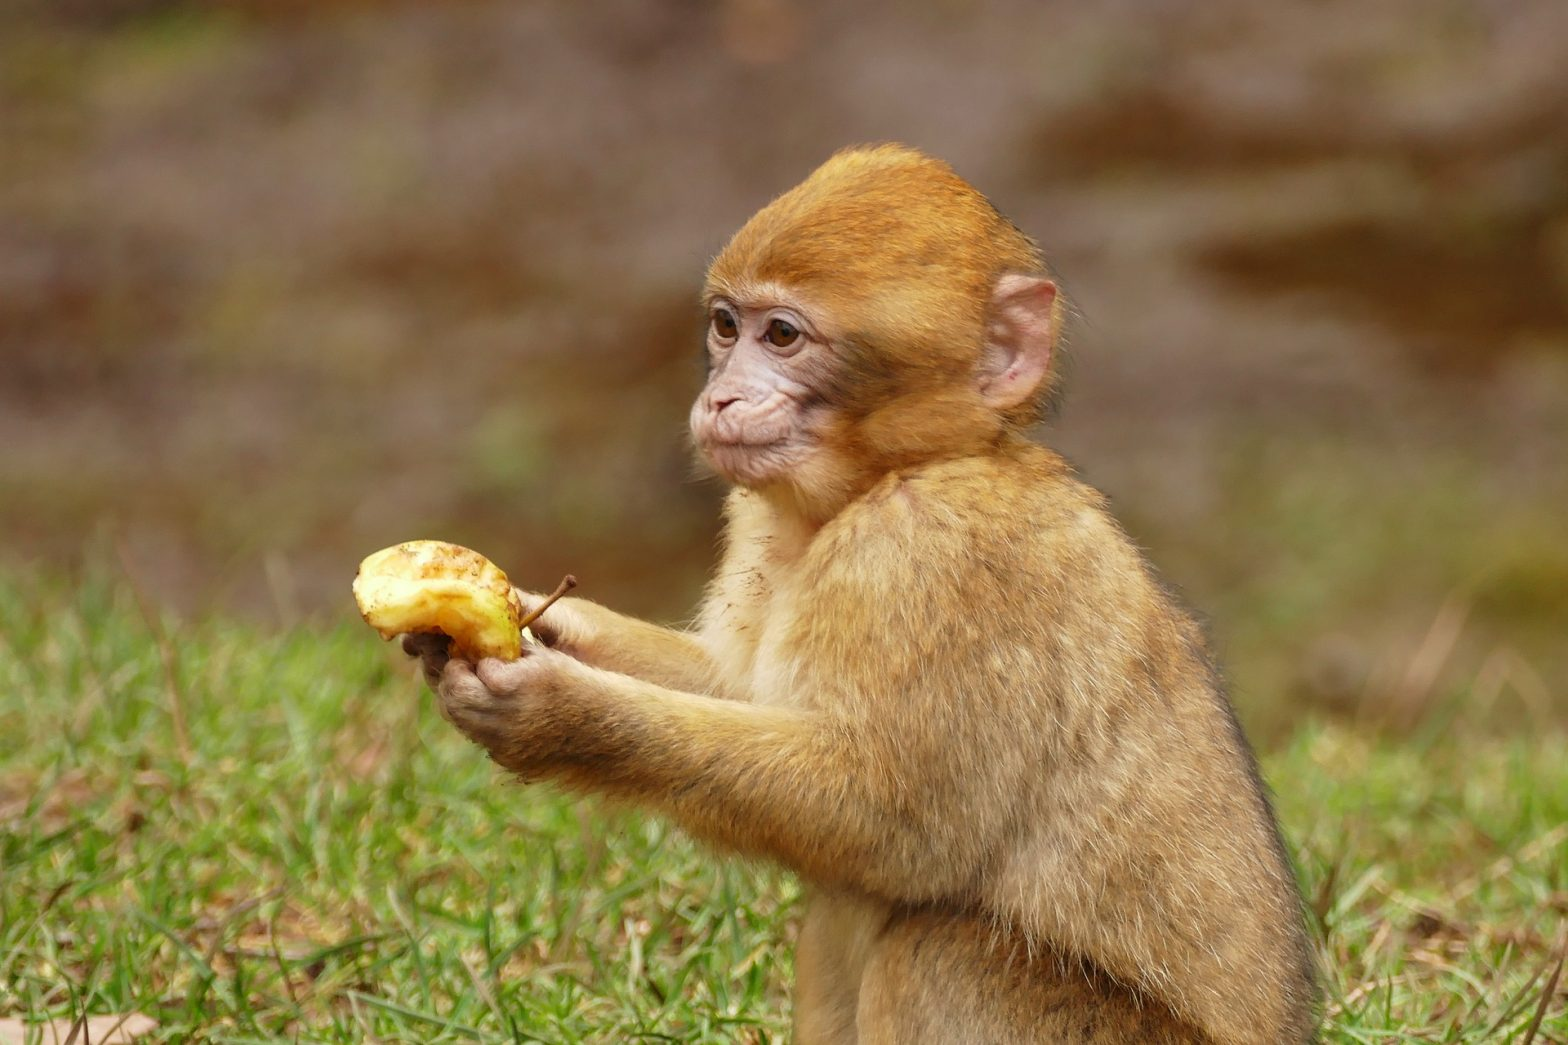 This macaque brought you a gift-